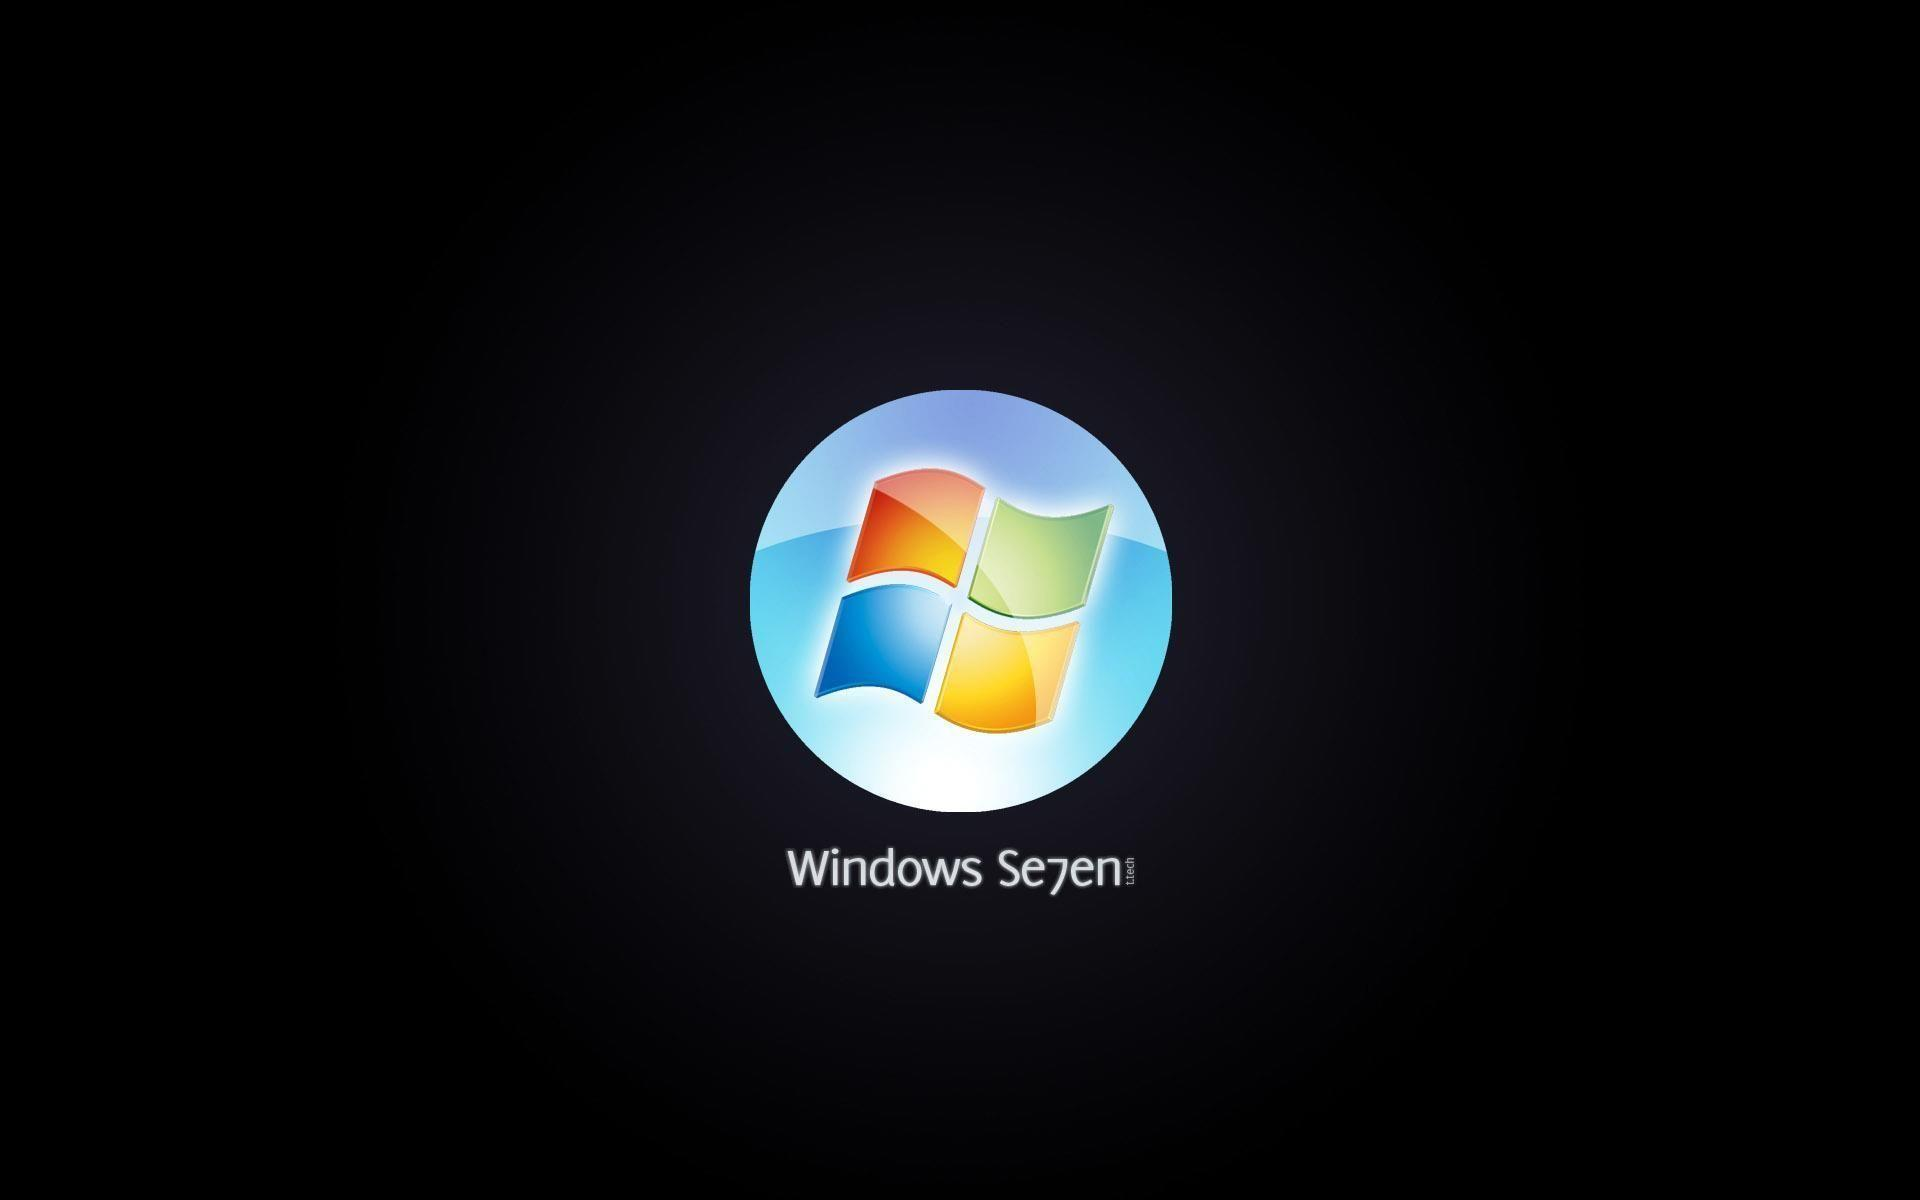 Official Windows 7 Wallpapers